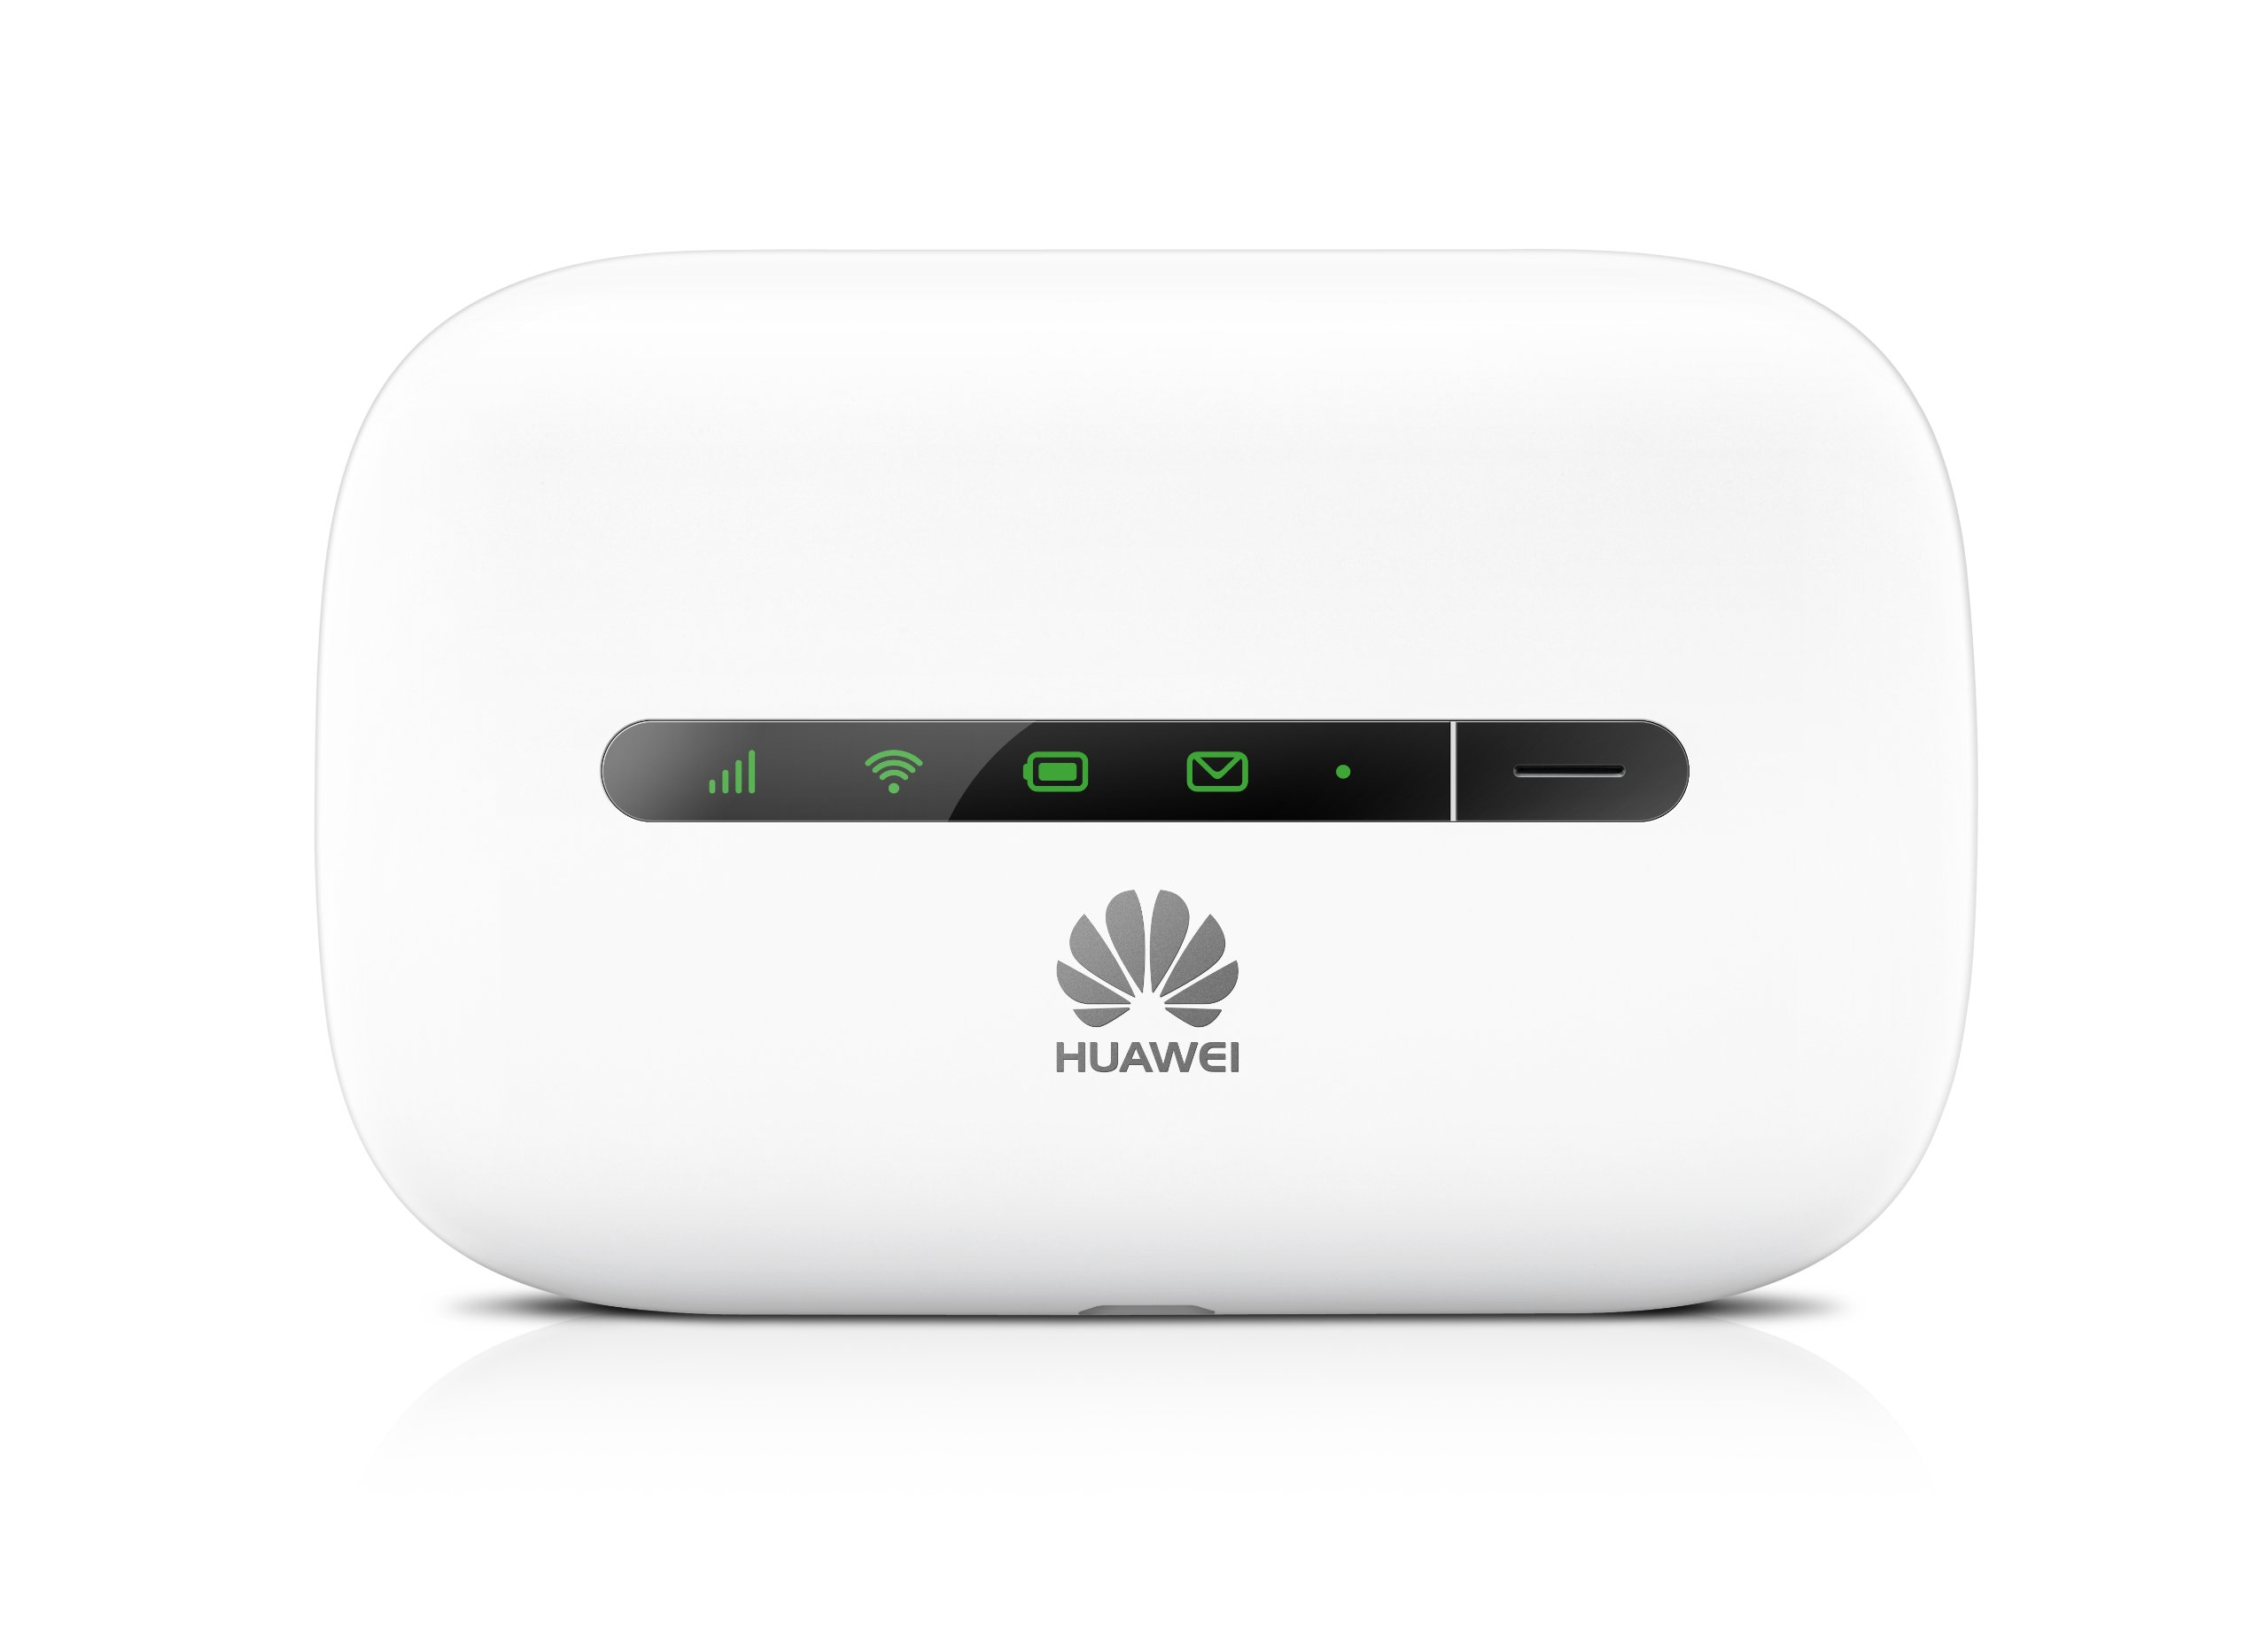 Huawei E5330Bs-2 3G Mobile WiFi Hotspot (3G in Europe, Asia, Middle East & Africa), OEM/ORIGINAL from Huawei. White